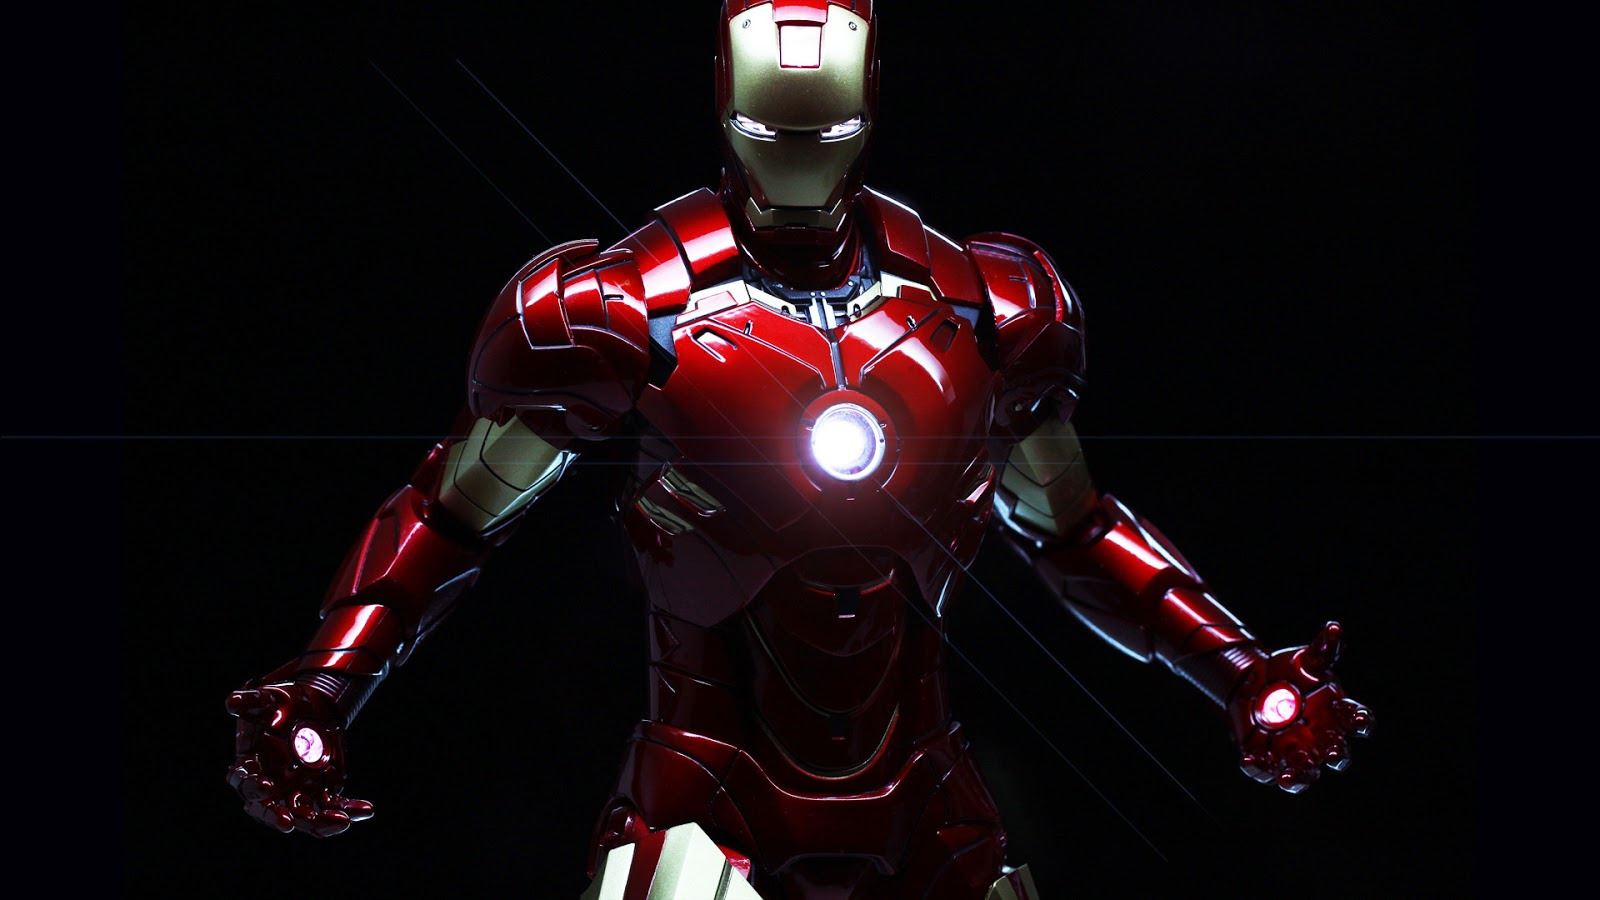 Free Download Wallpapers Hd For Mac Iron Man 3 Wallpapers Hd